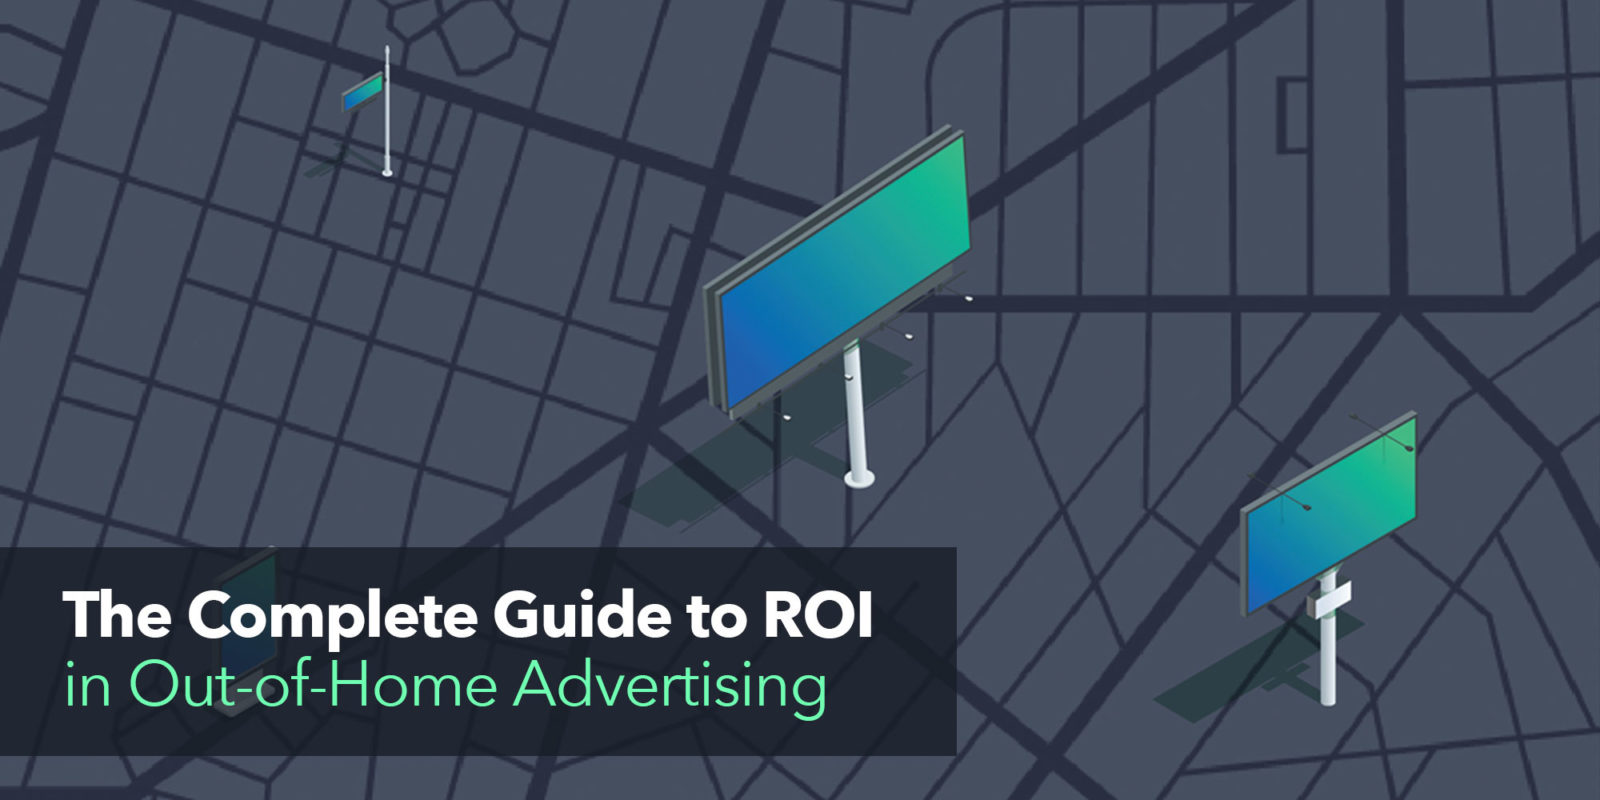 Your guide to out-of-home ads.